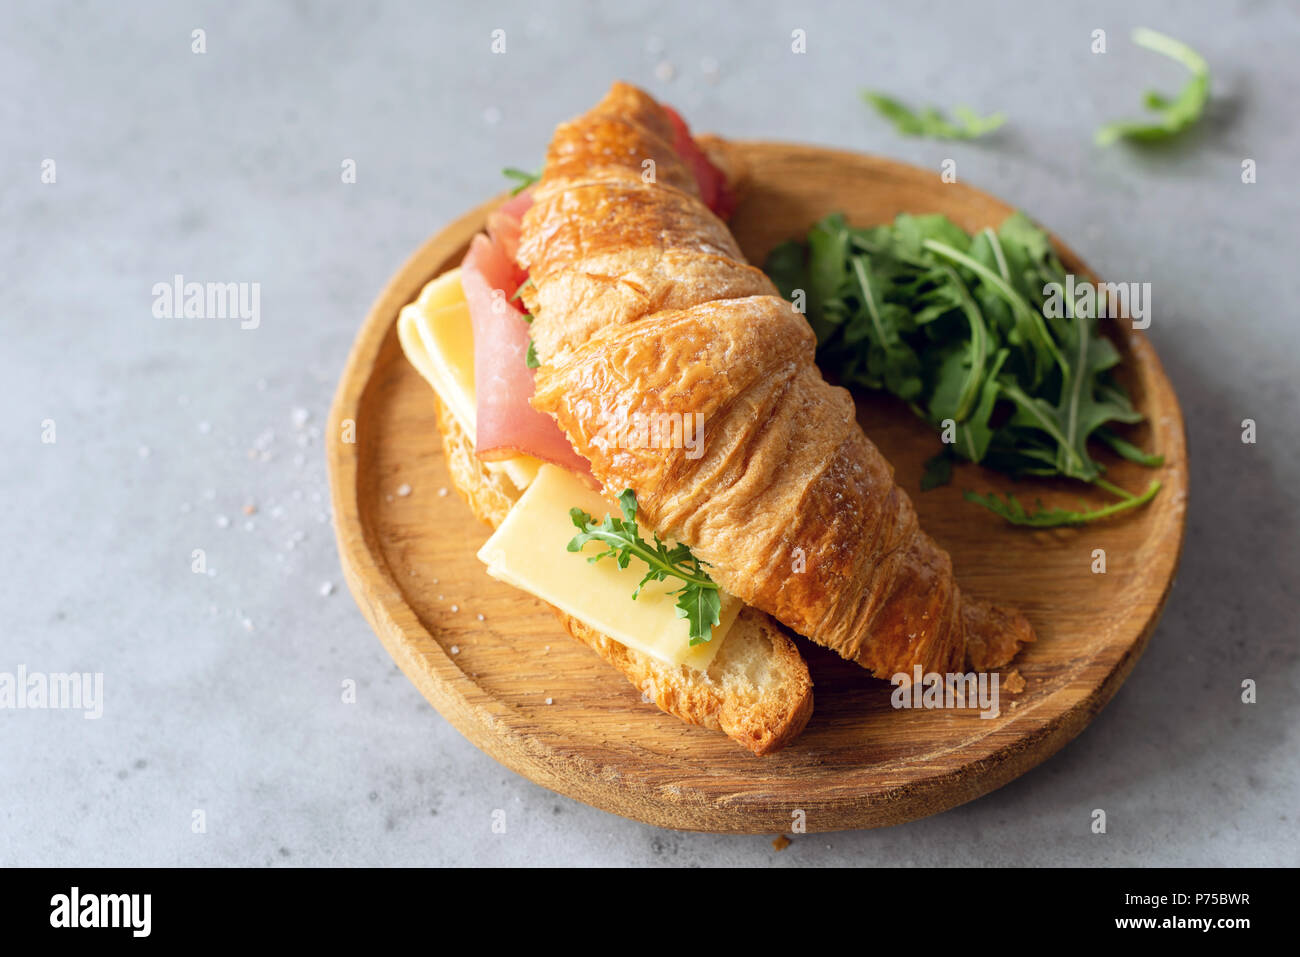 Tasty croissant sandwich with ham and cheese on wooden board on grey concrete background. Breakfast, lunch or snack sandwich - Stock Image